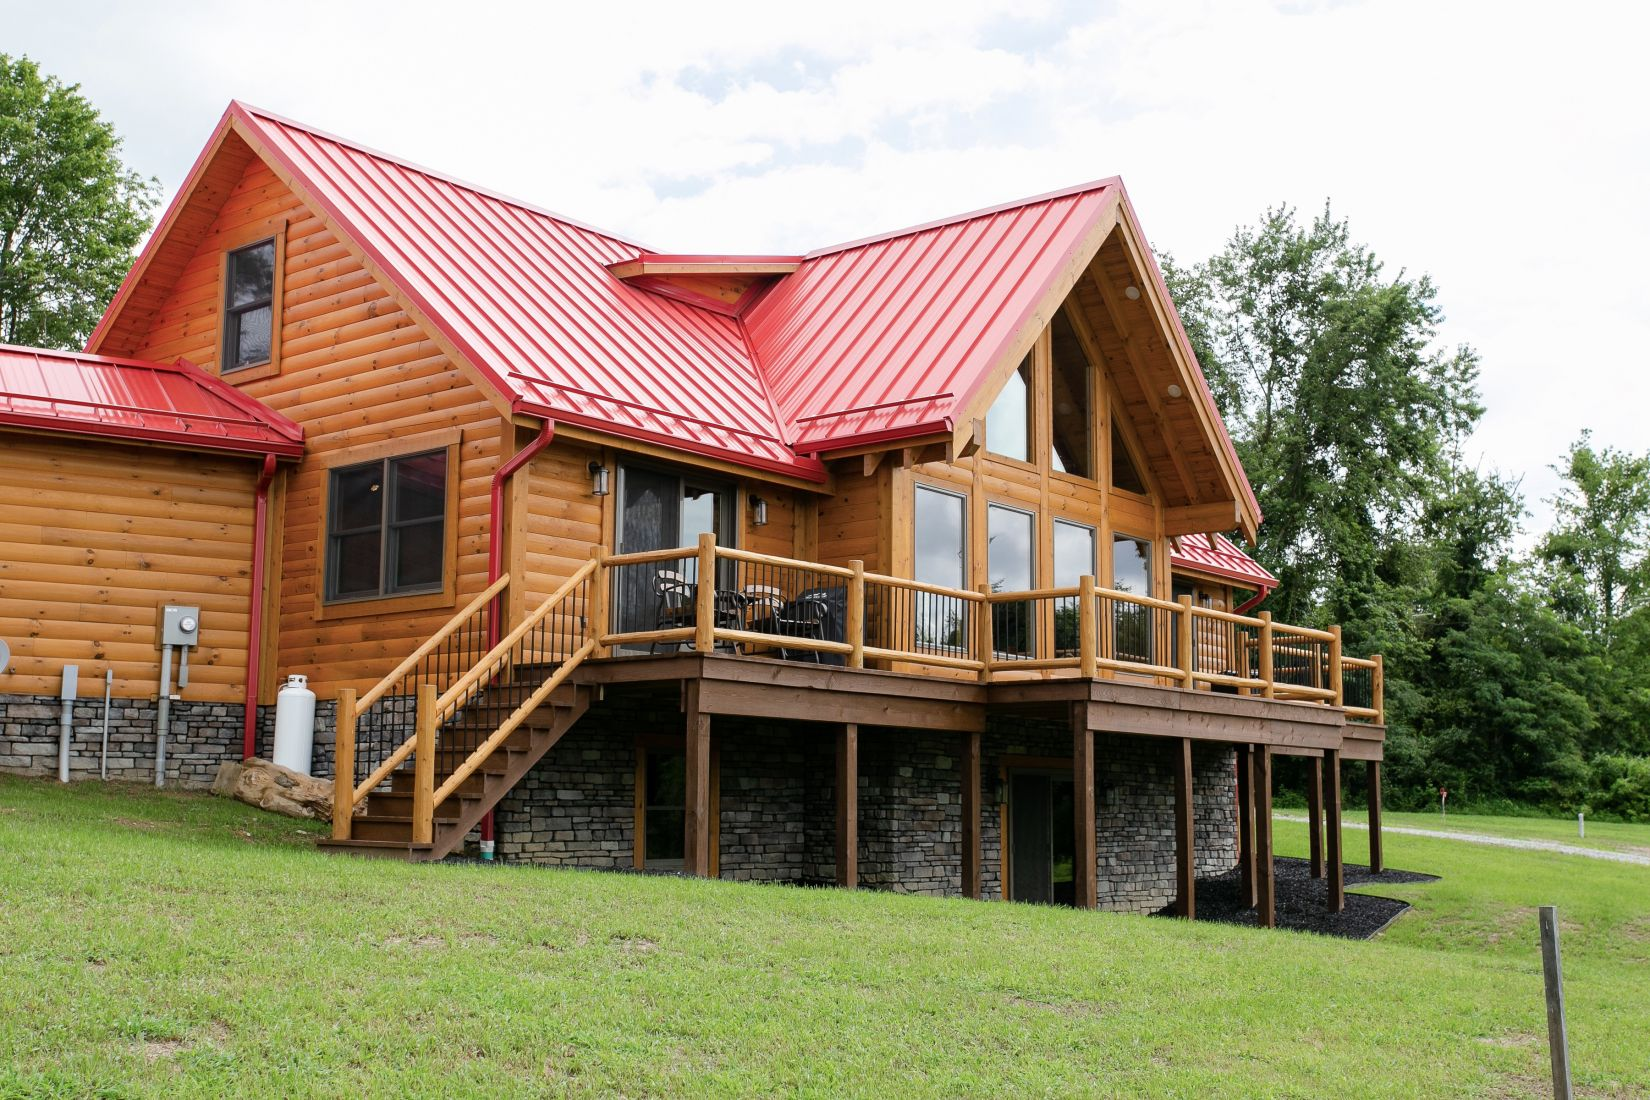 Full Open Deck in the Rear of this Log Home